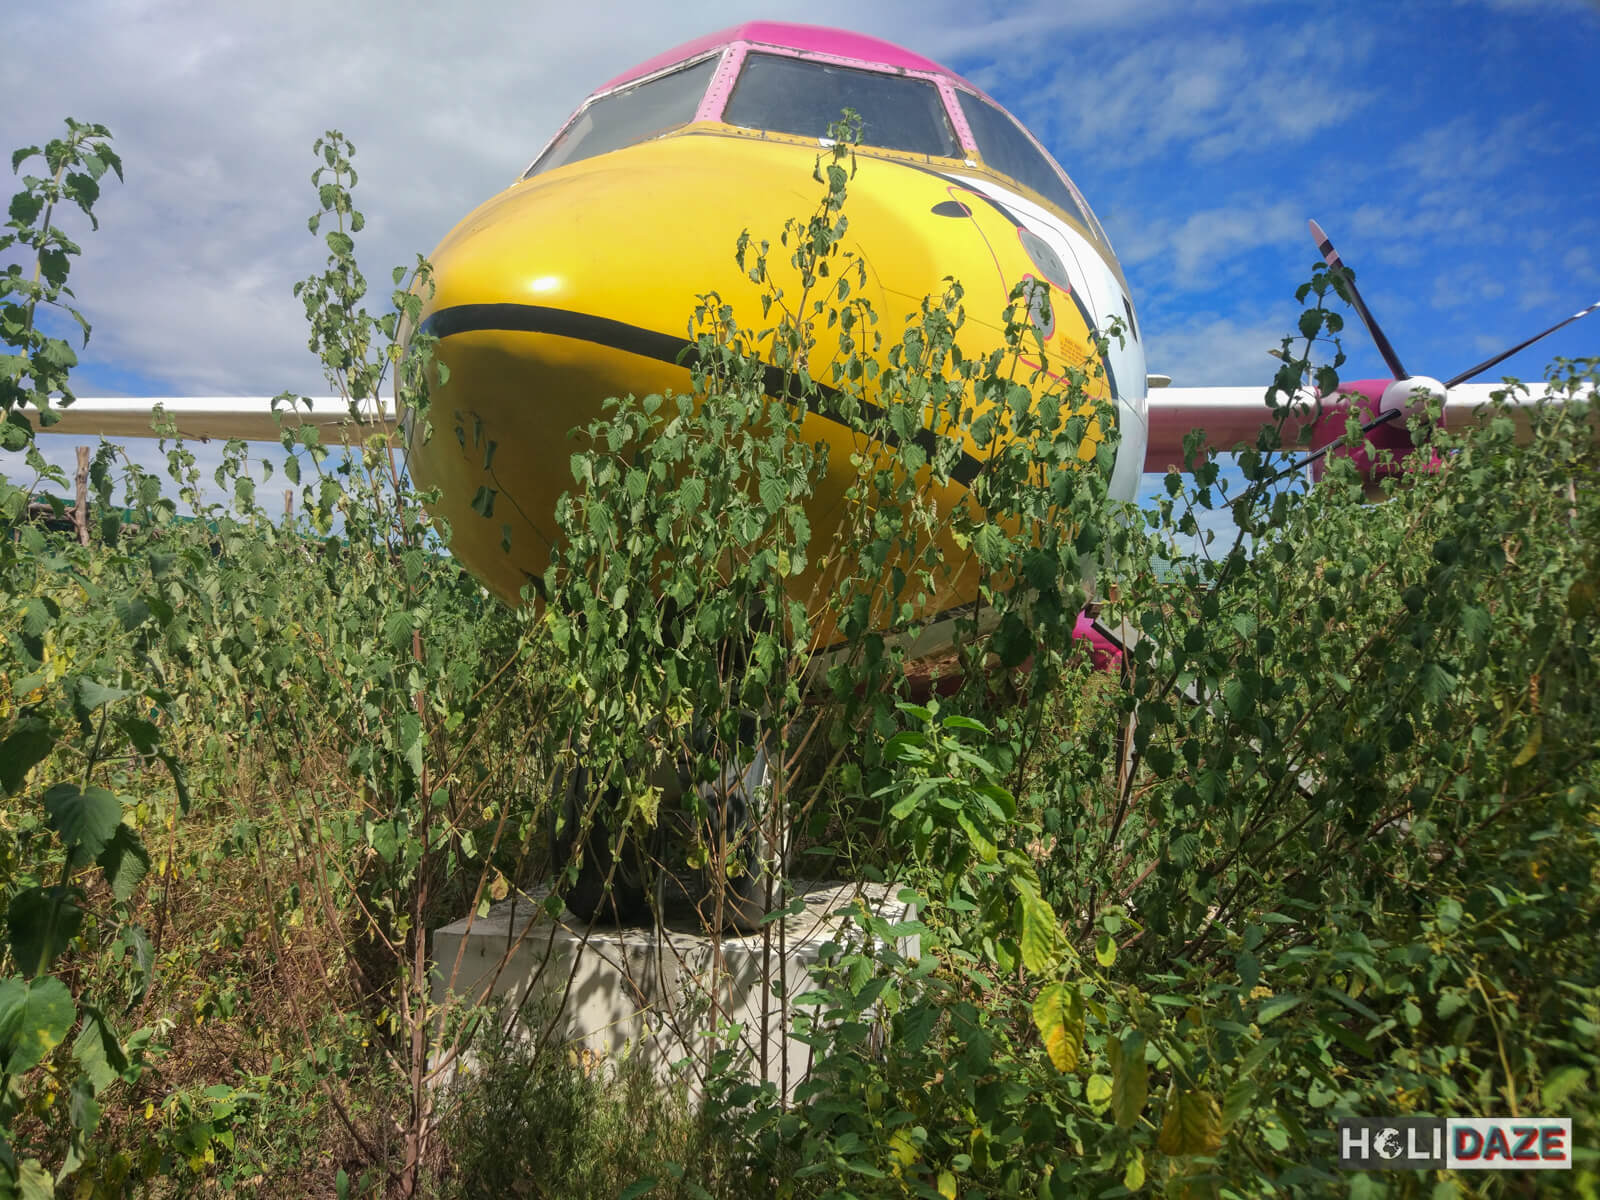 Found this Nok Air plane in the woods near the beach in Rayong, Thailand